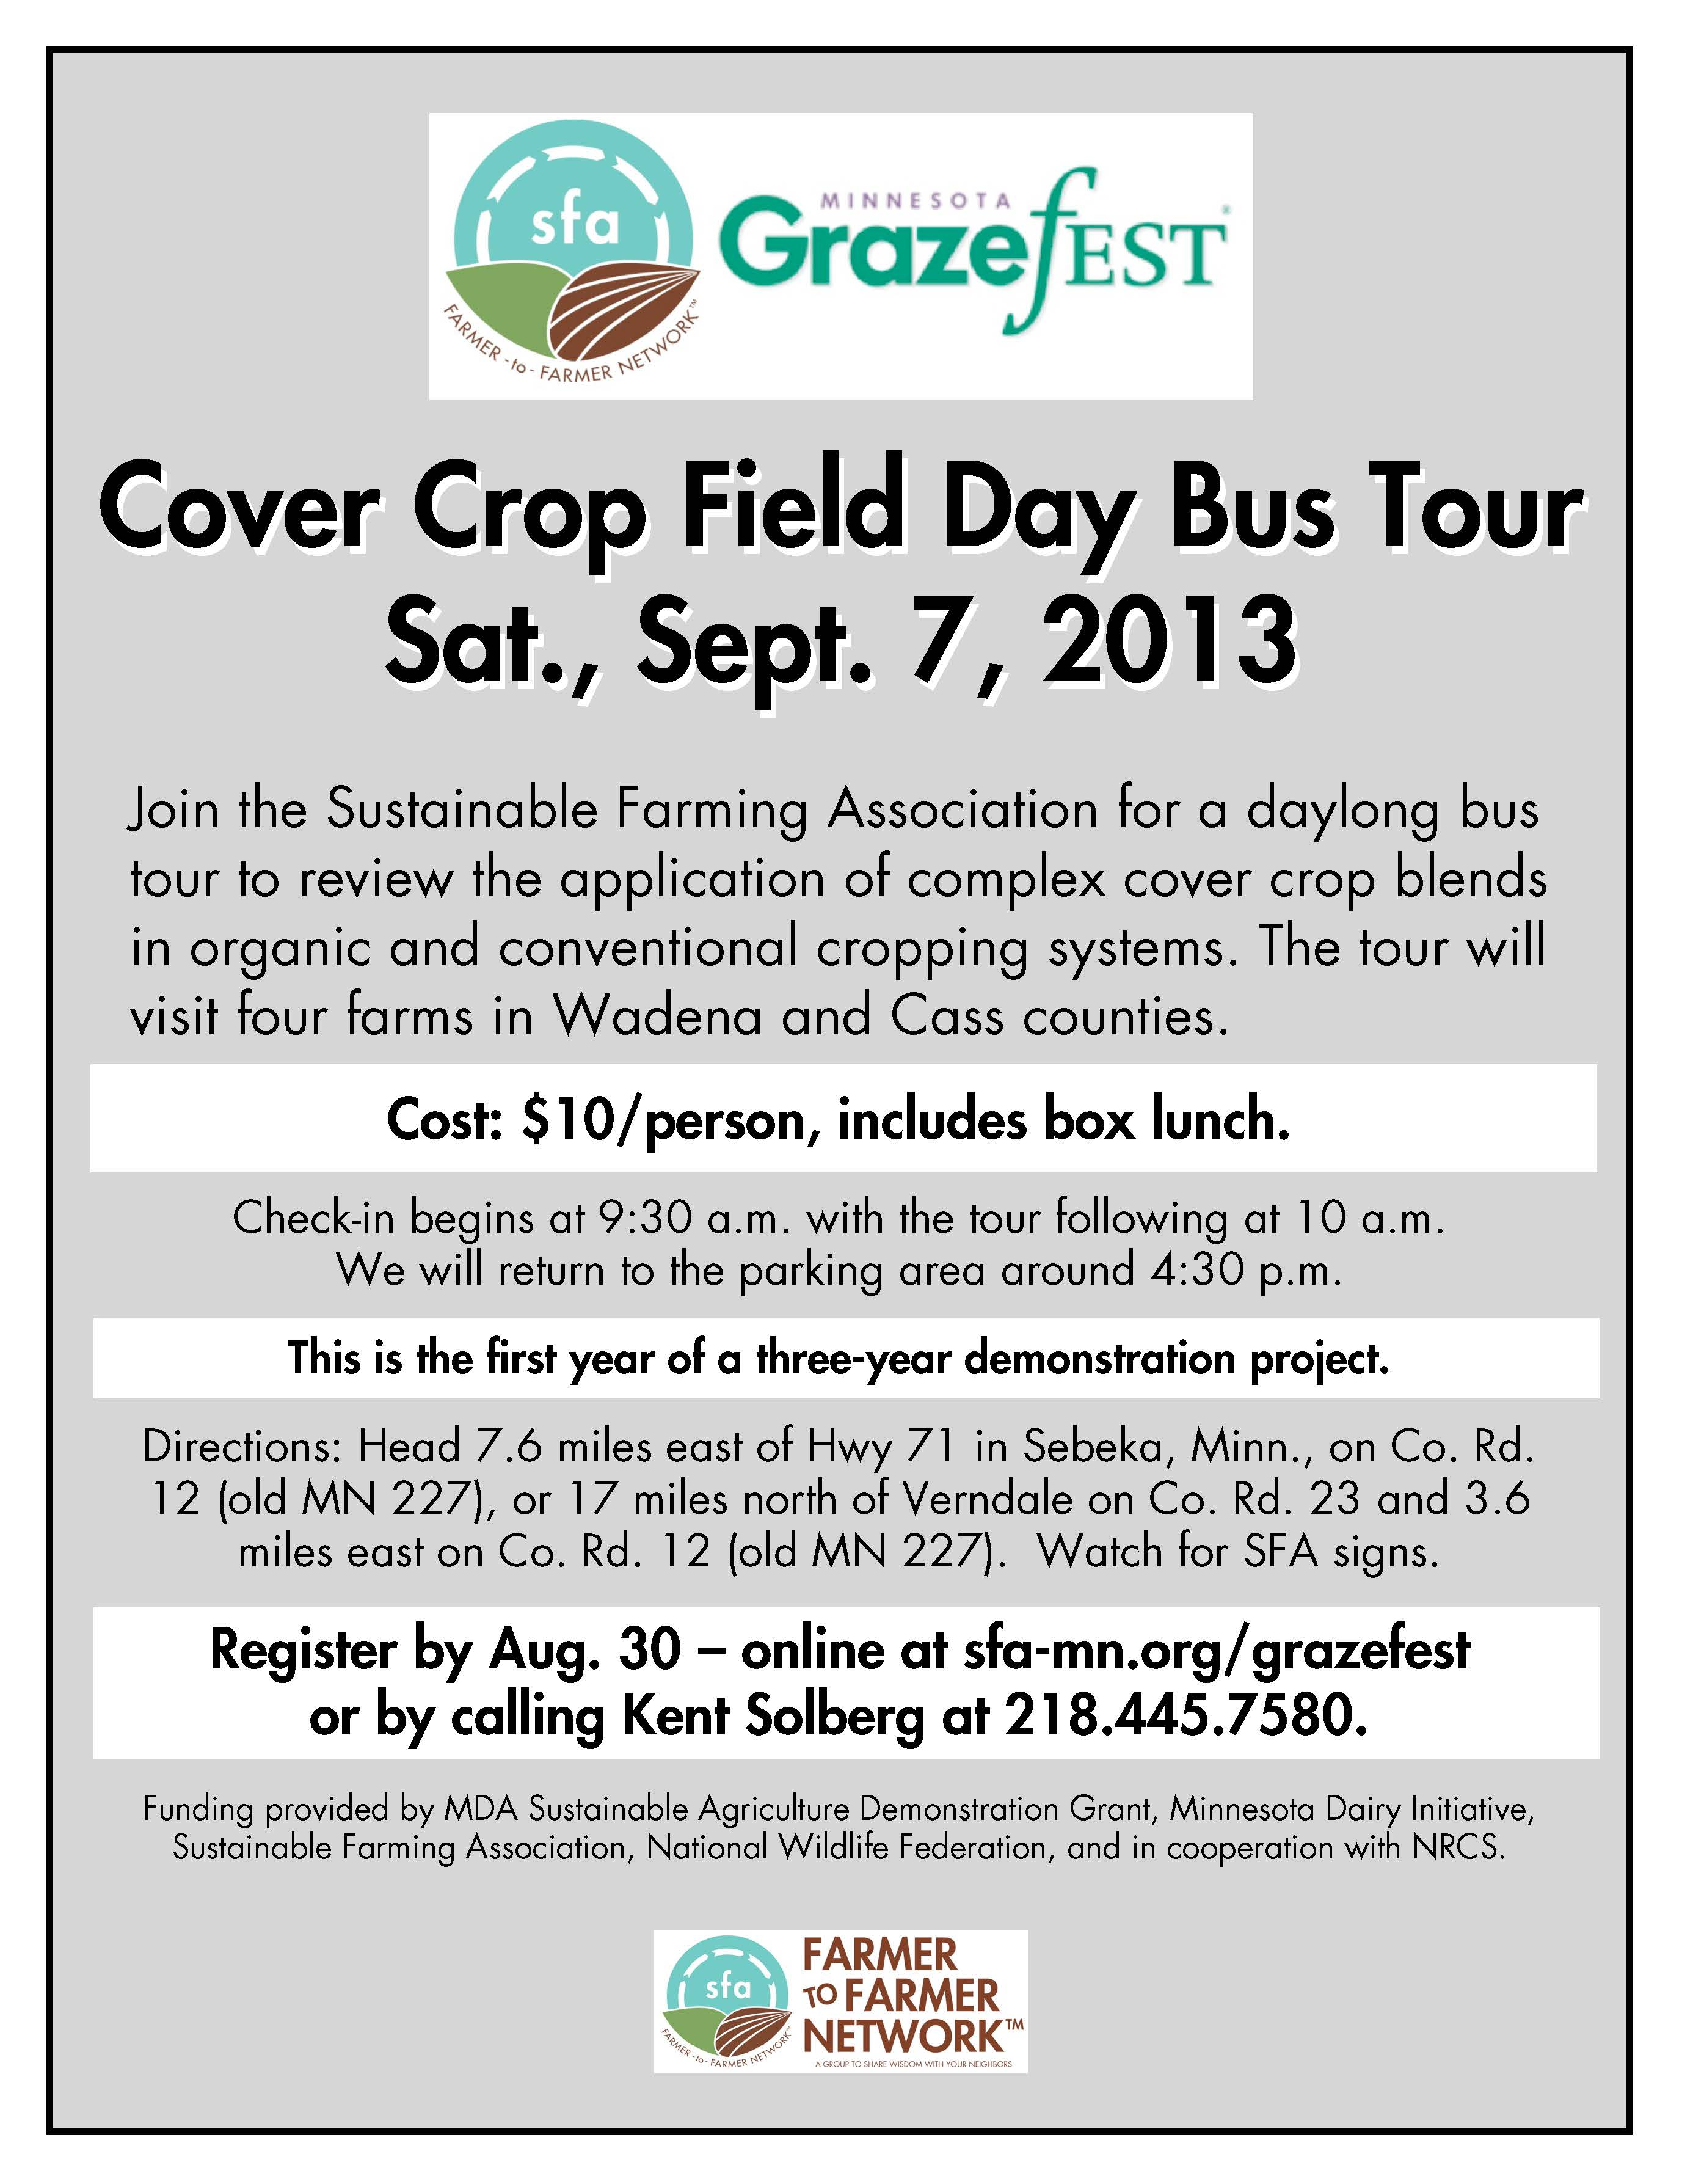 Mccc Cover Crop Information Midwest Crops Council